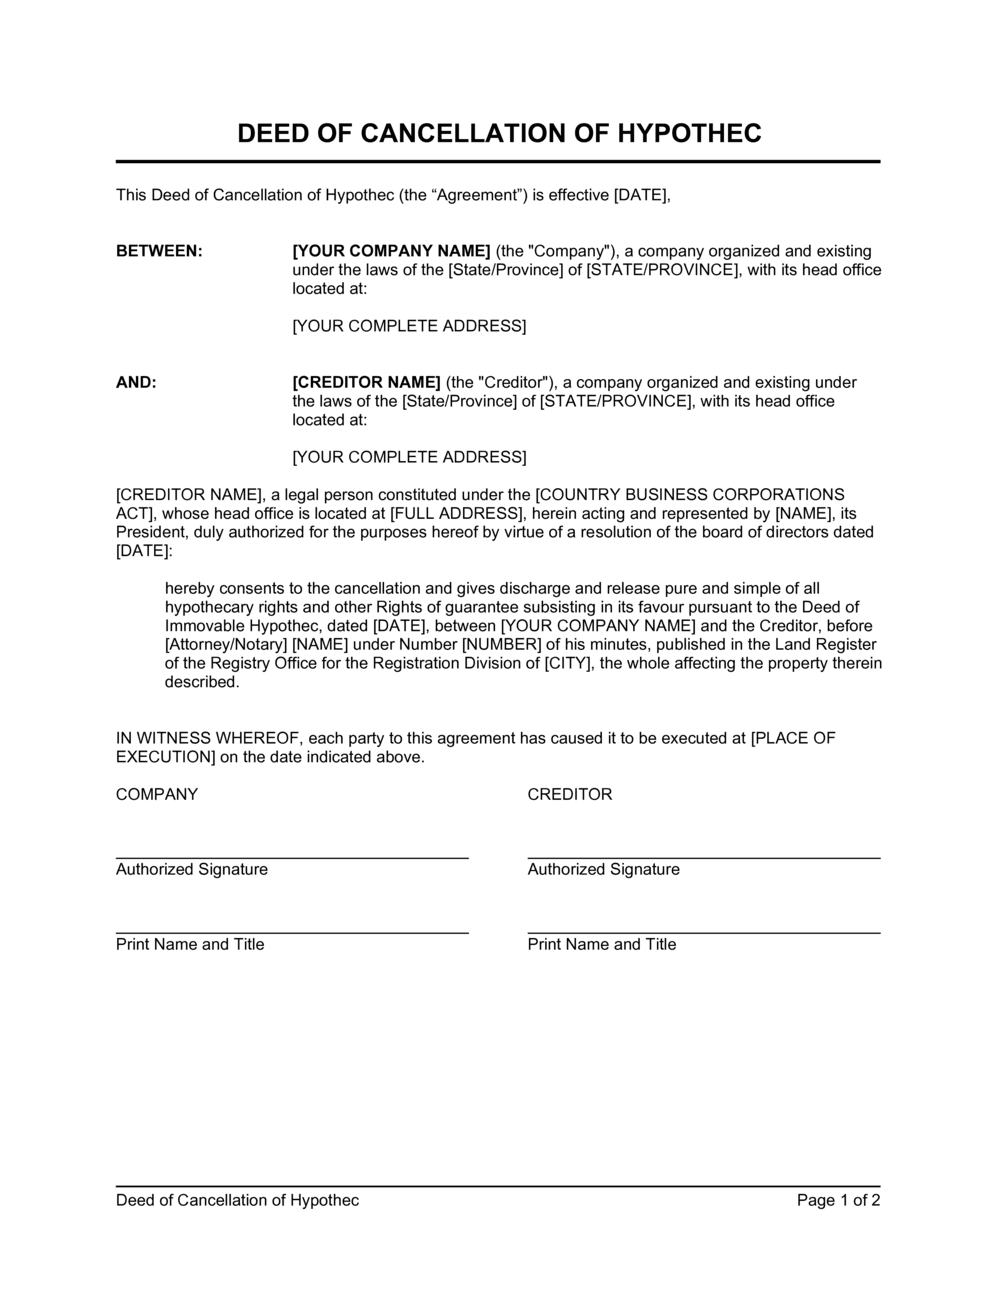 Business-in-a-Box's Deed of Cancellation of Hypothec Template